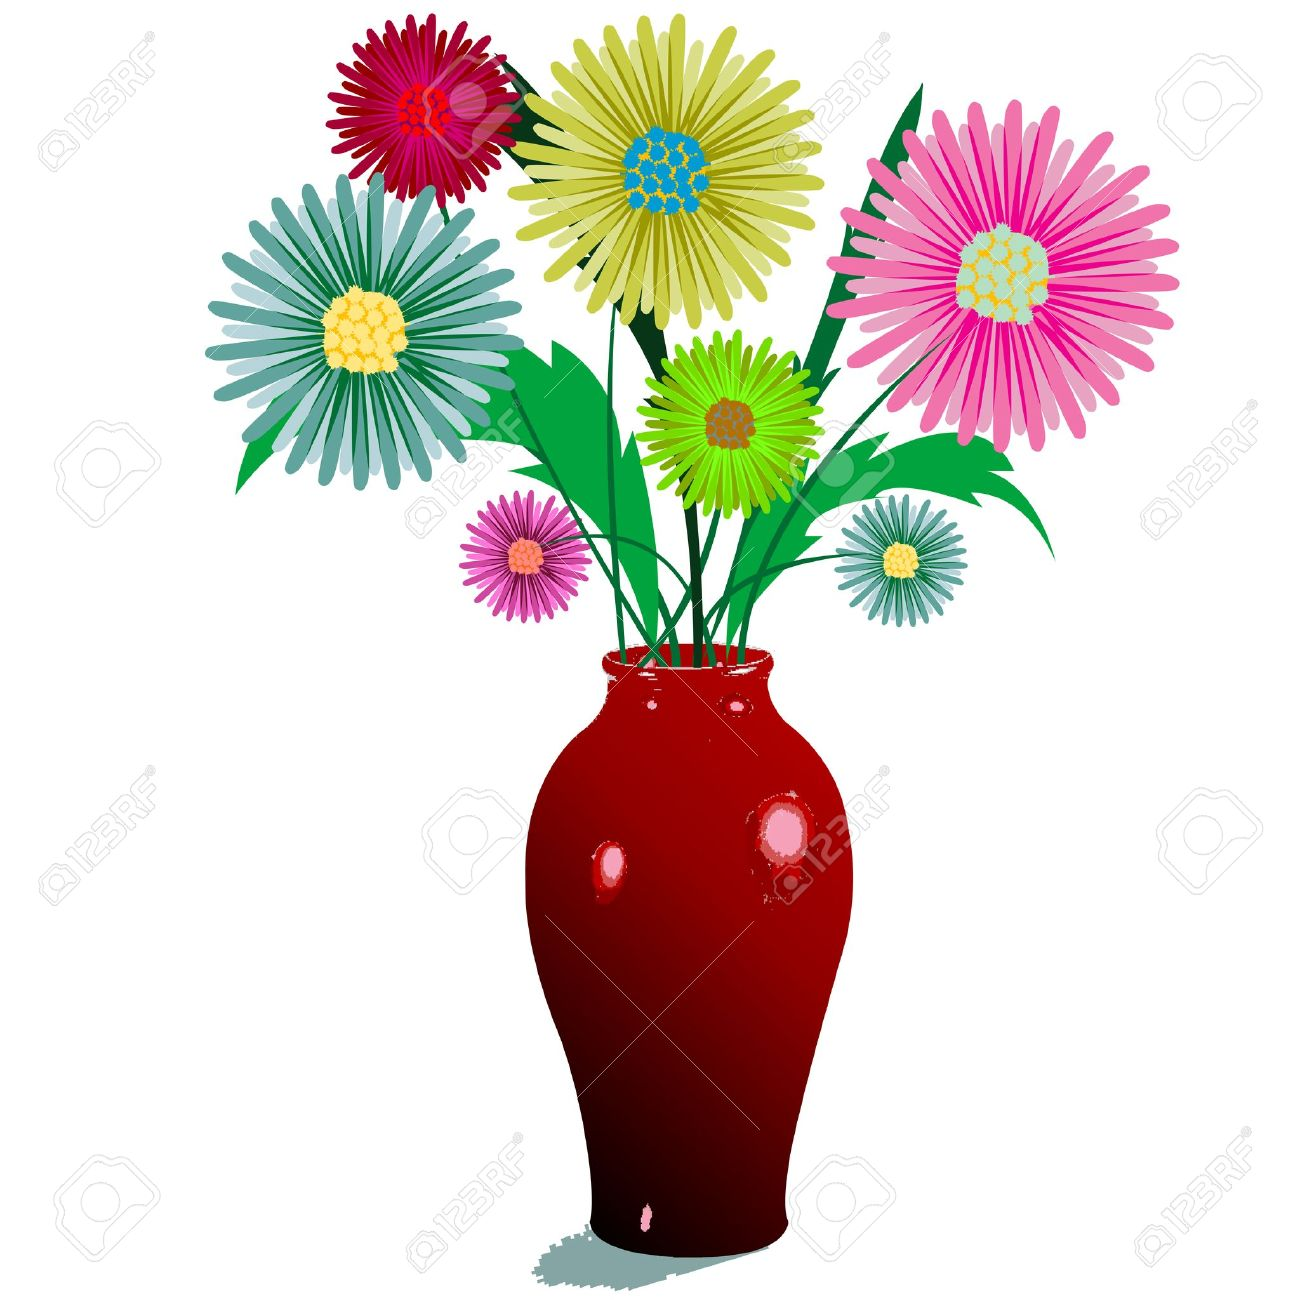 Flower Vase Clipart at GetDrawings.com | Free for personal use ...